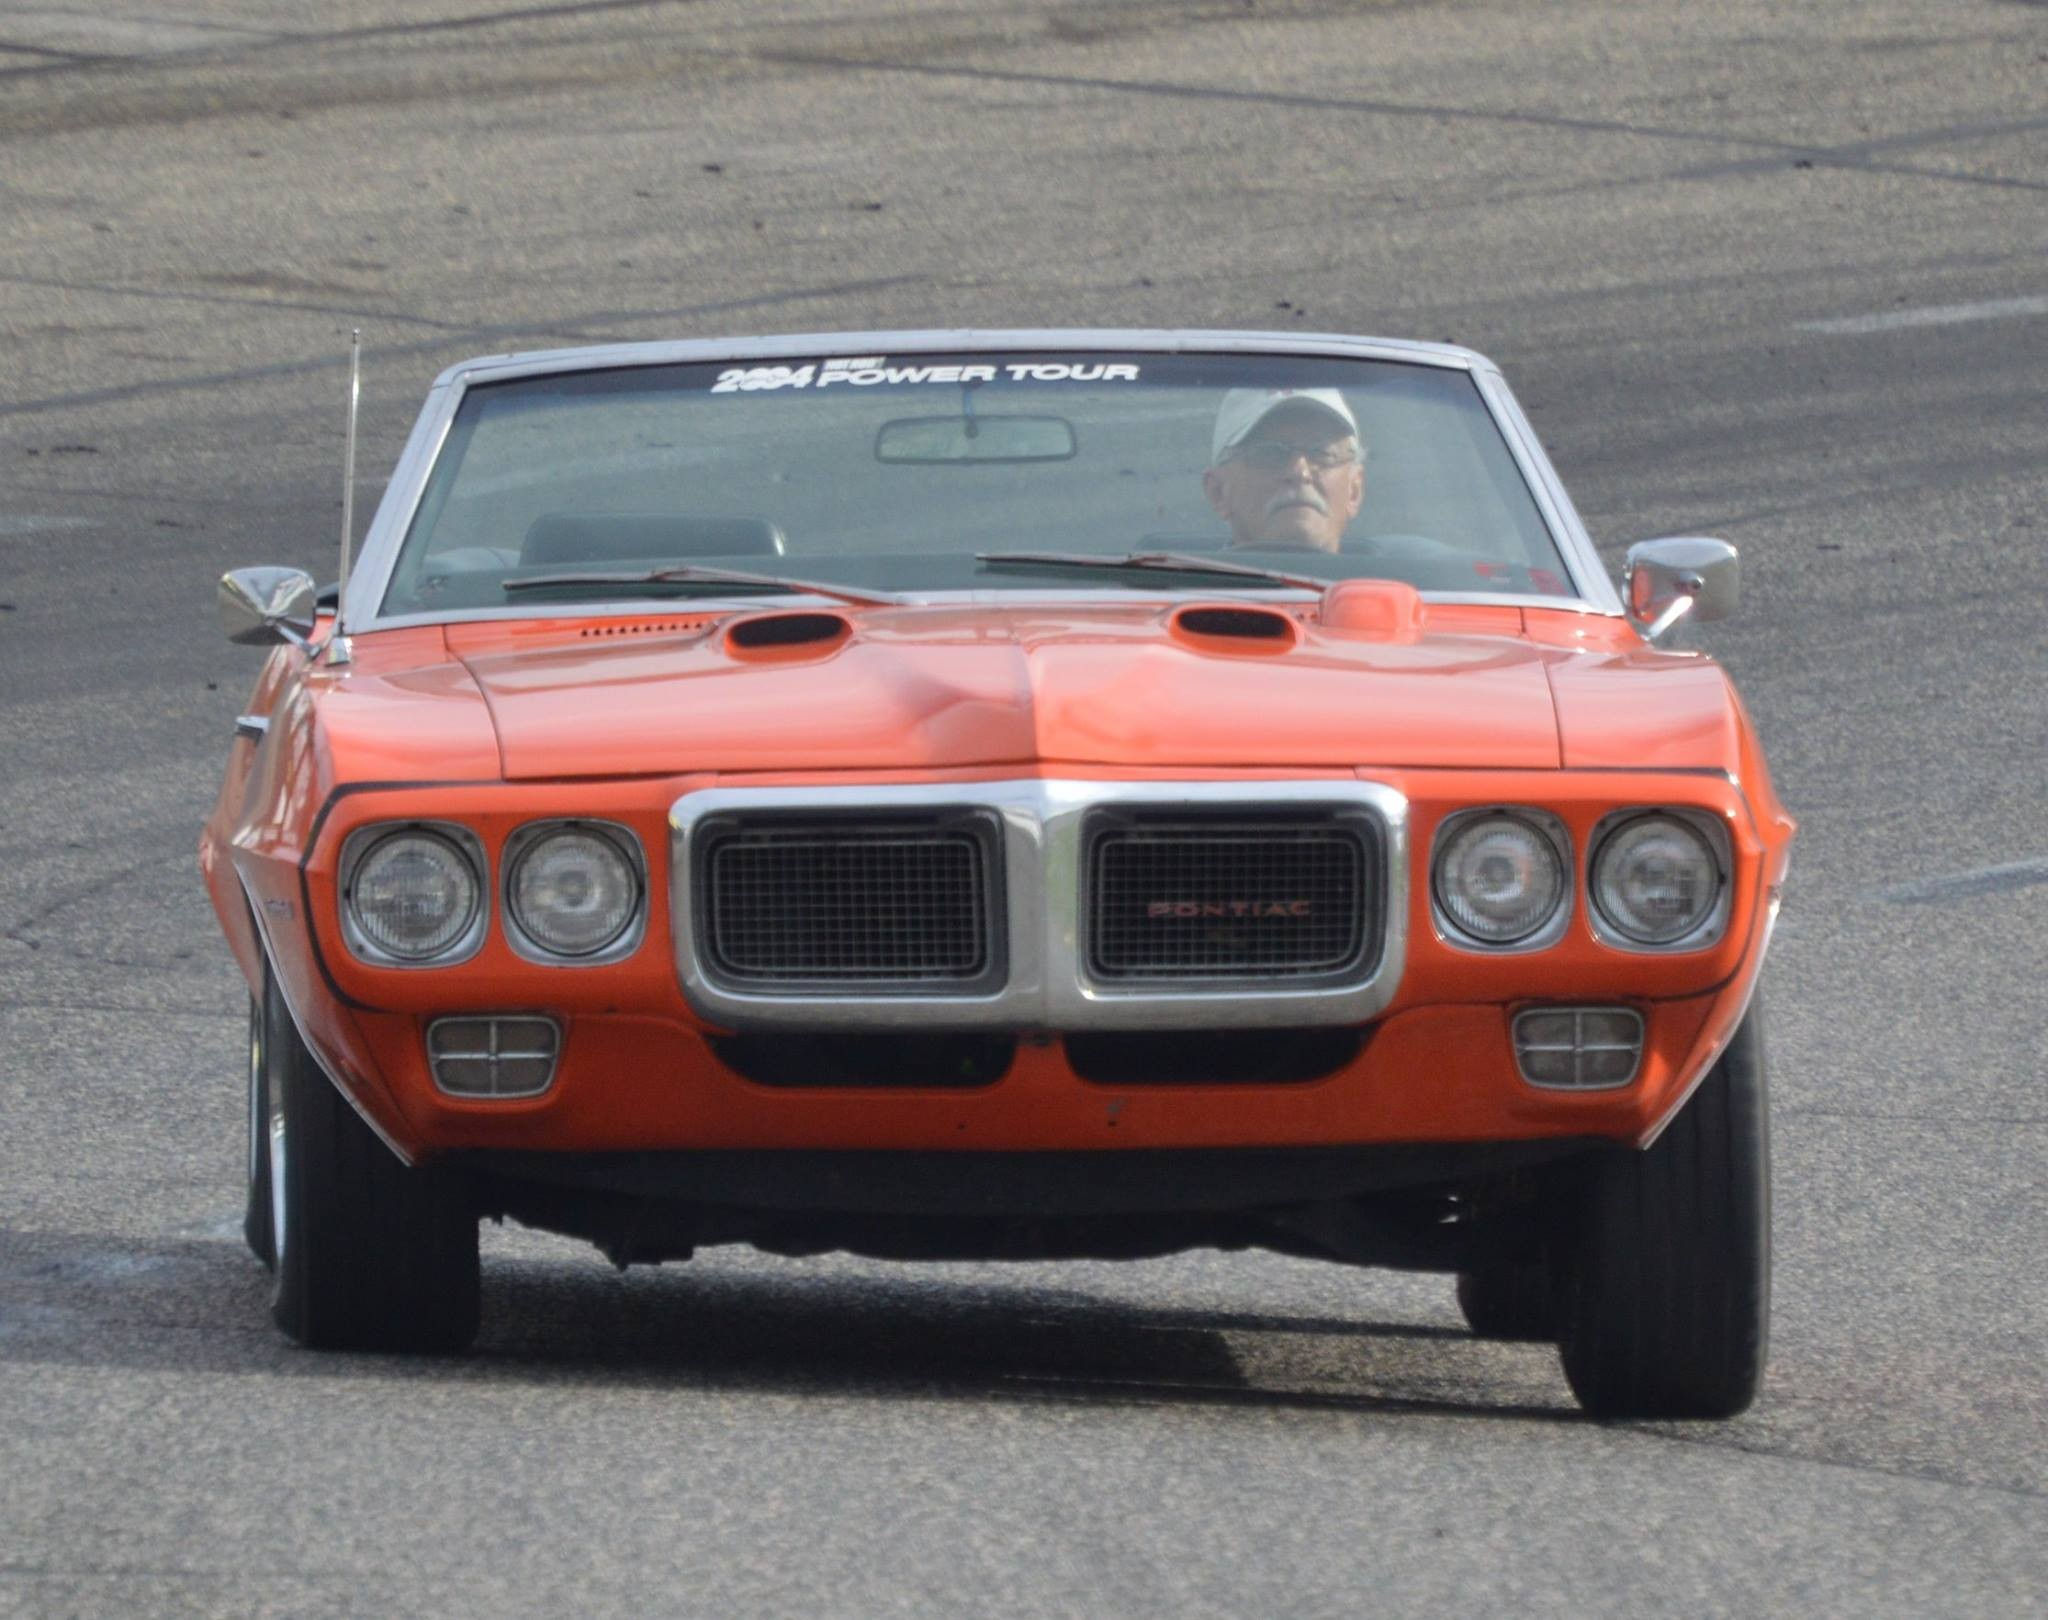 Pontiac Adventures on Track